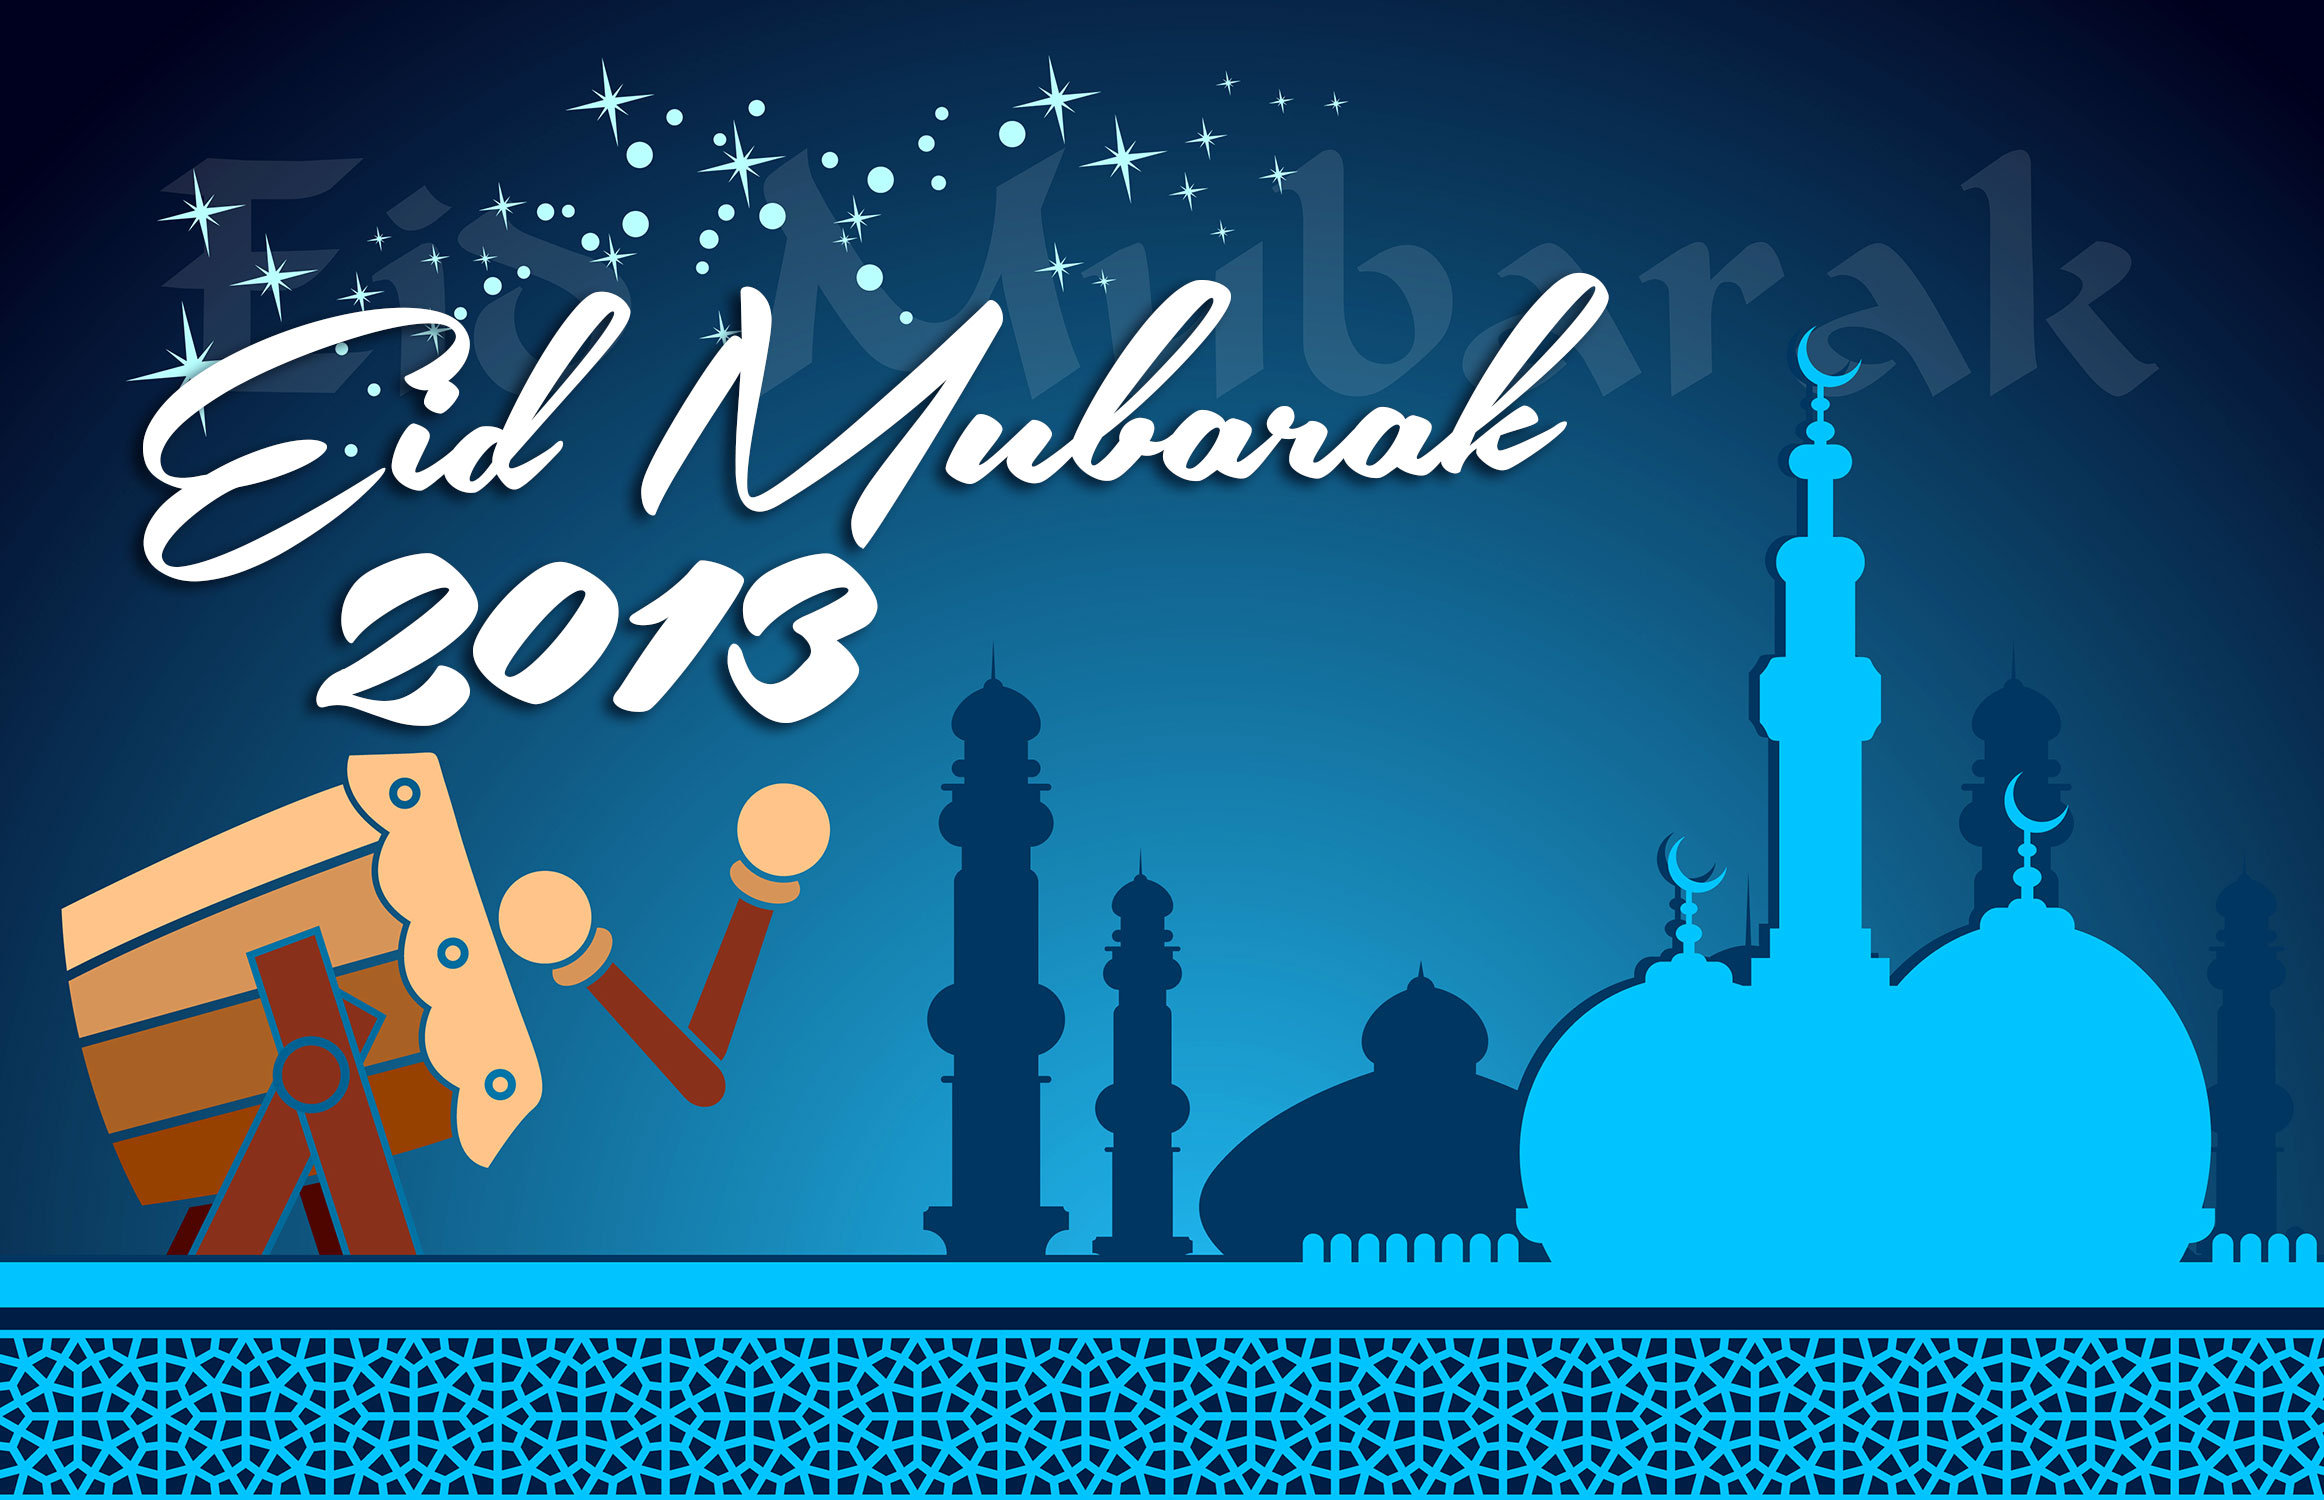 Eid Mubarak 2013 Lovely Eid Mubarak 2013 Greetings, Walpapers, Posters